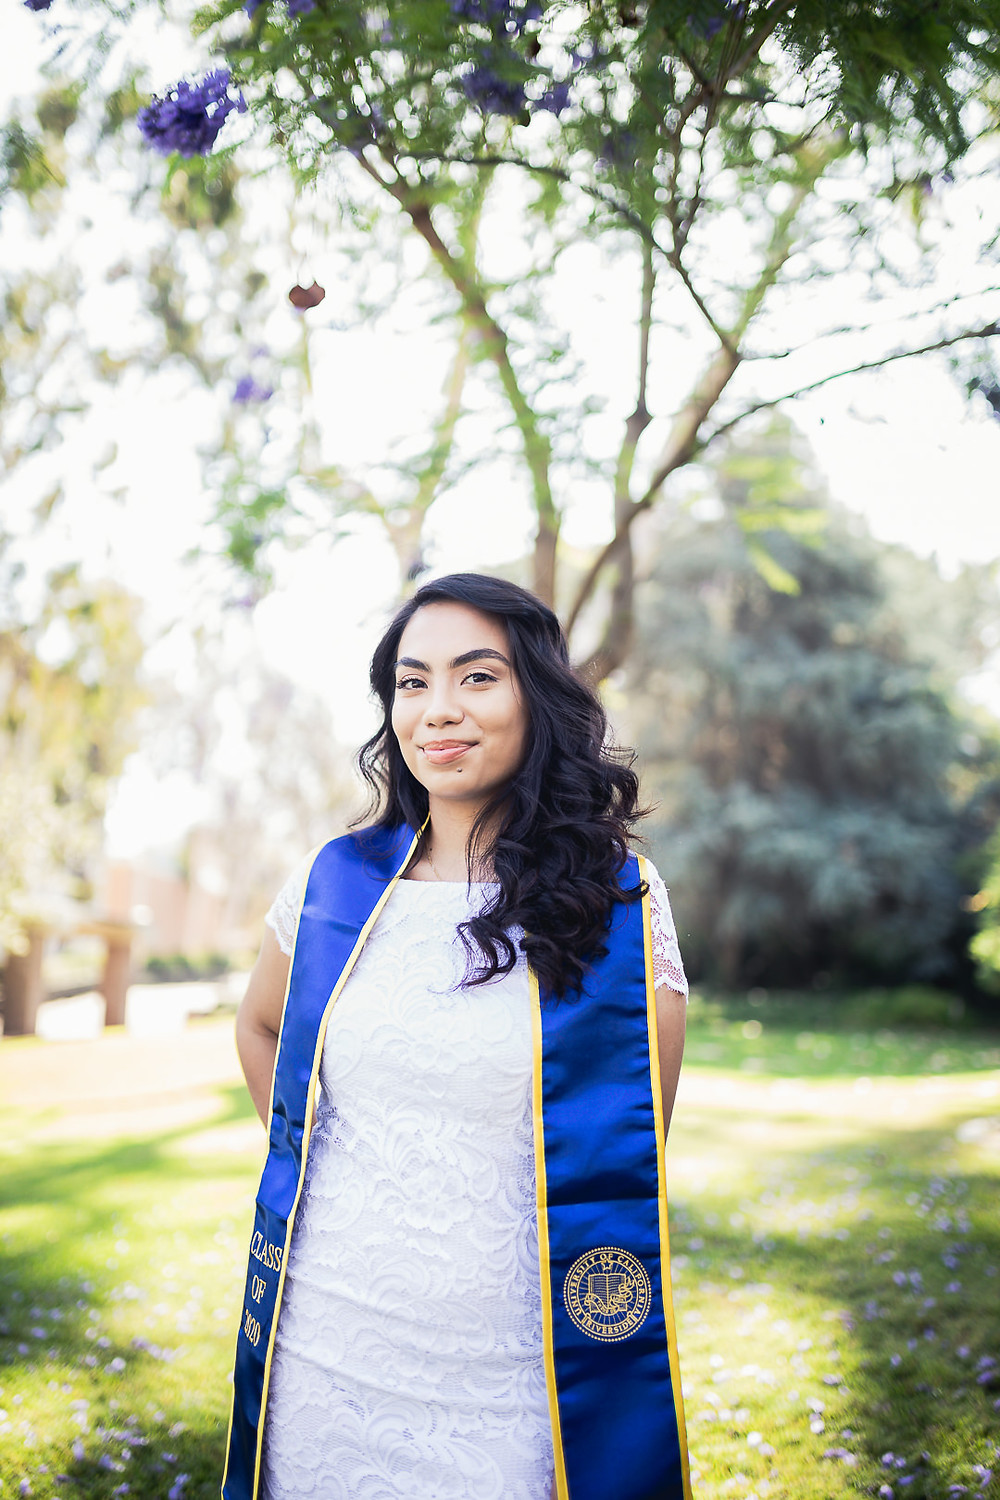 University of California Riverside Graduation Photos | Ashley 4